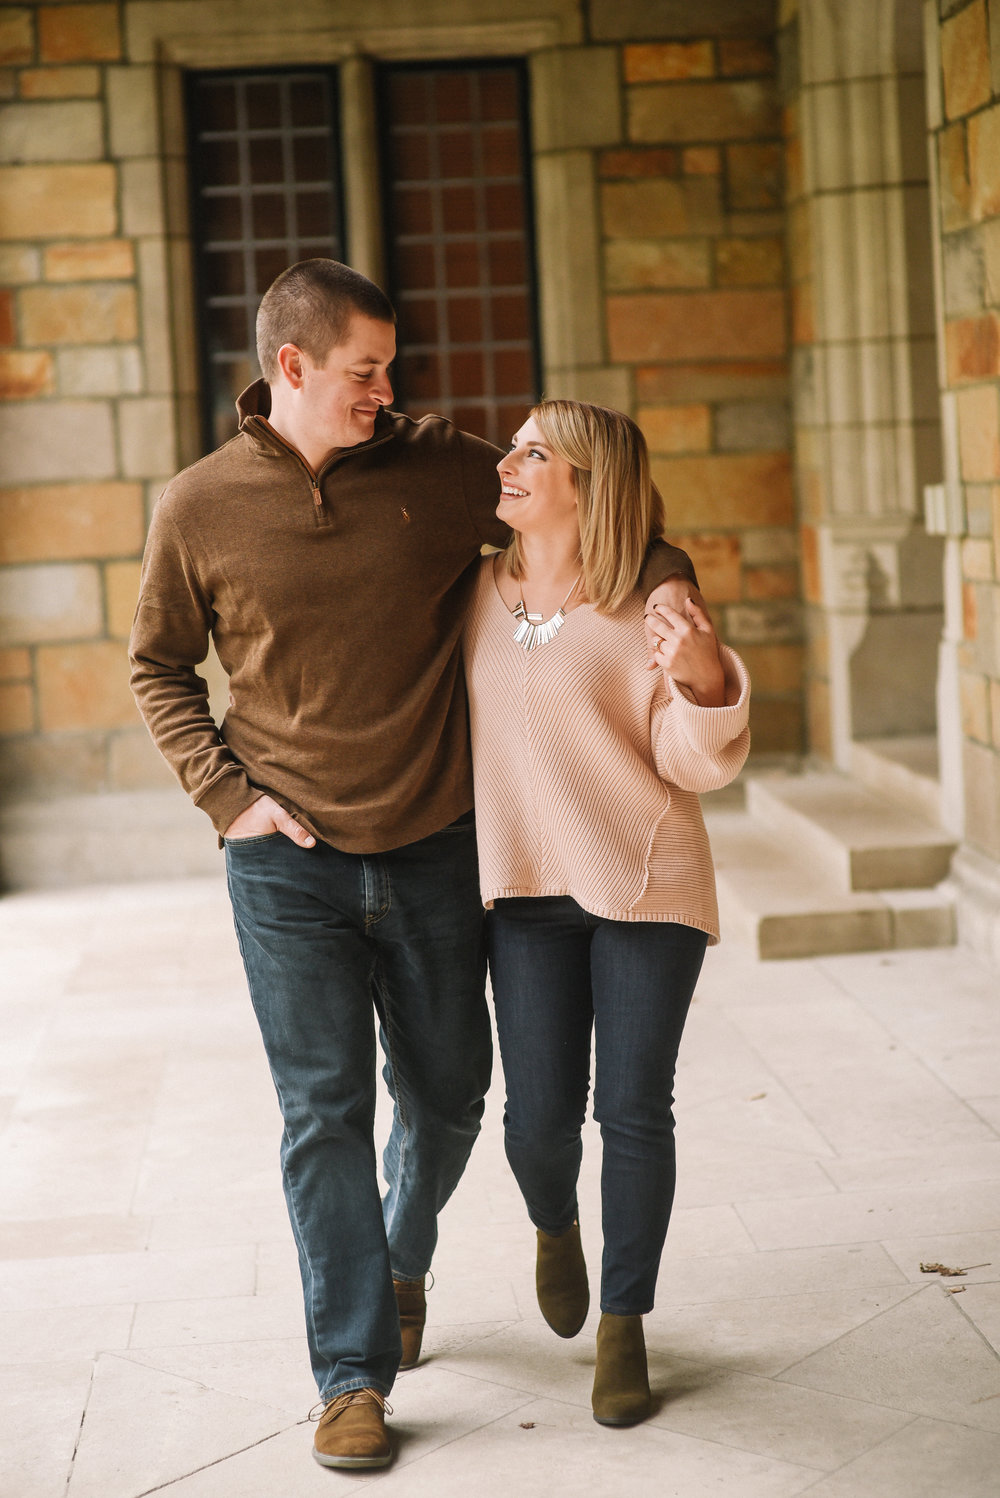 Law_Quad_Ann_Arbor_Engagement_Photos-4.jpg